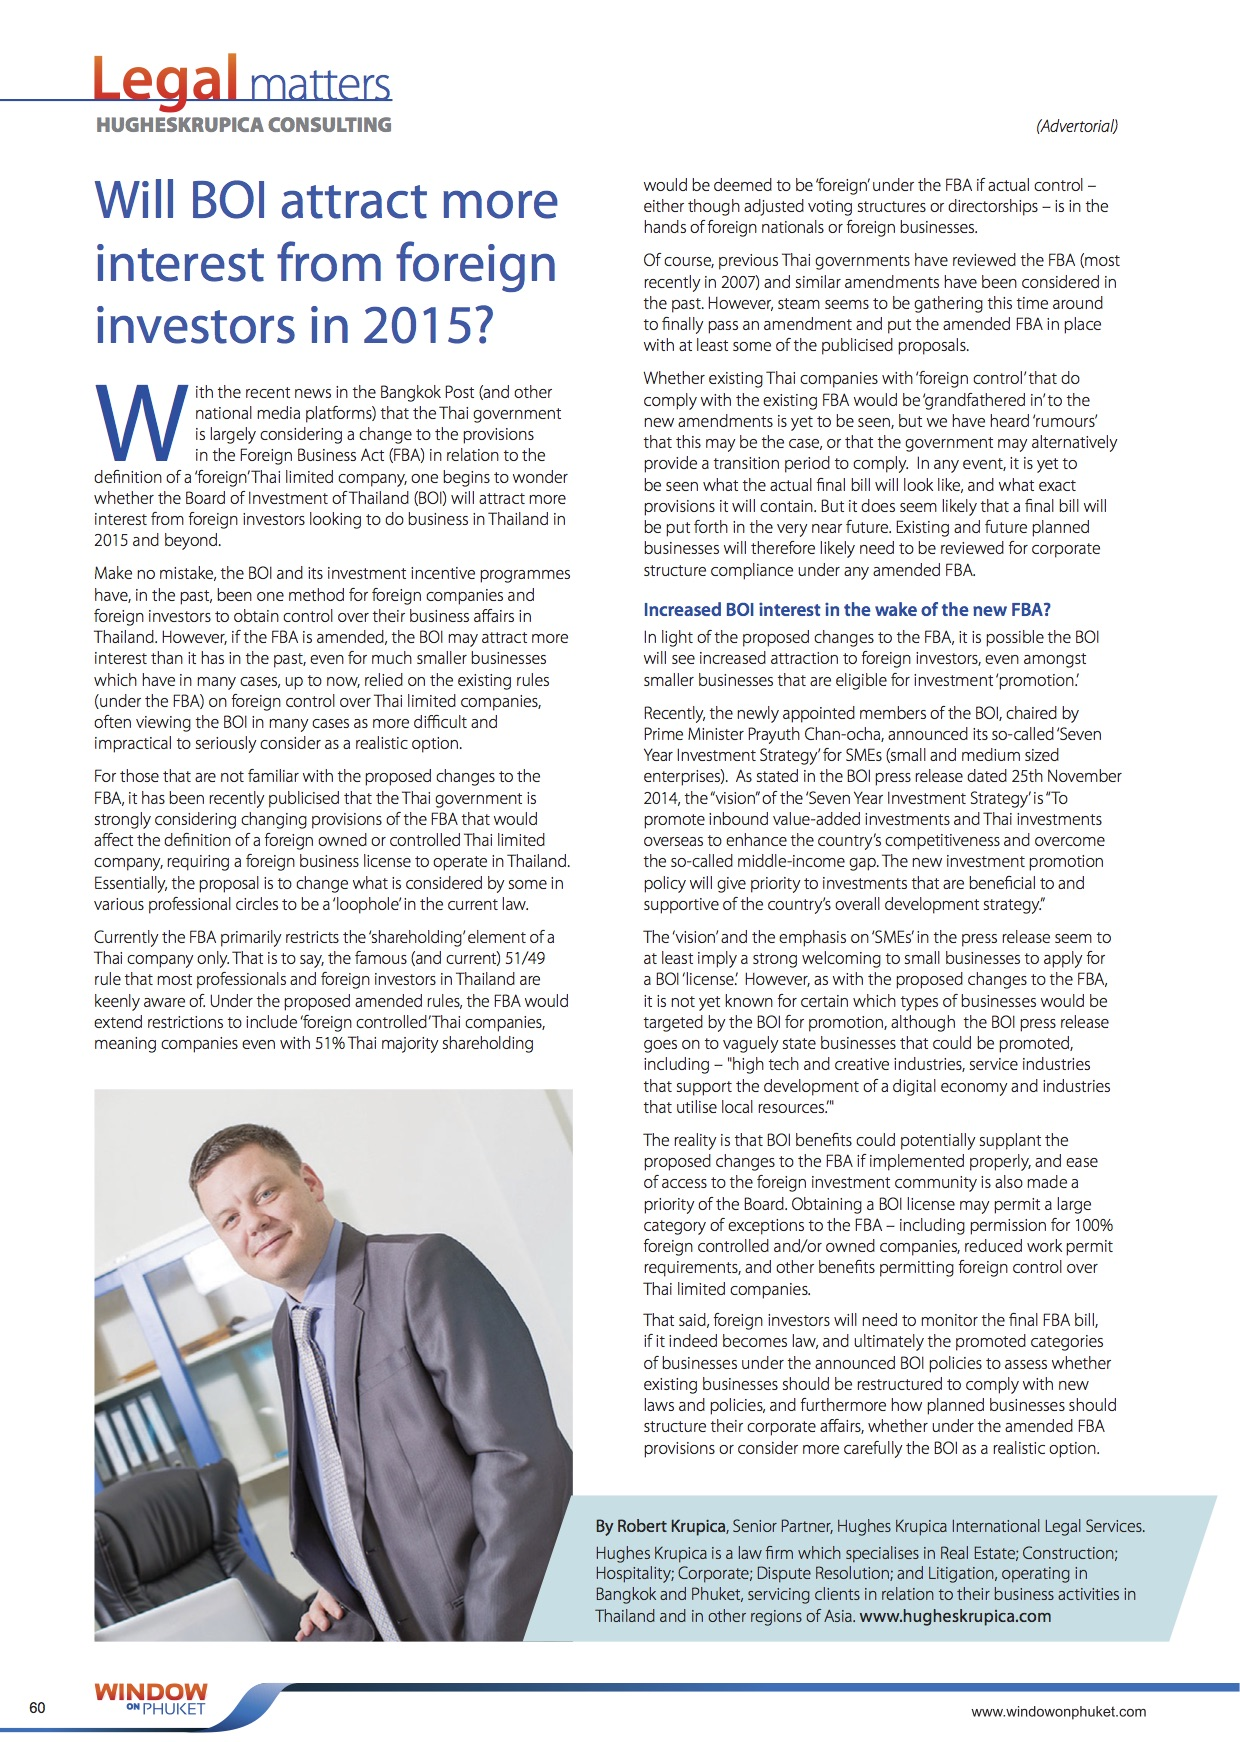 Robert Krupica on Board of Investment Thailand for 2015